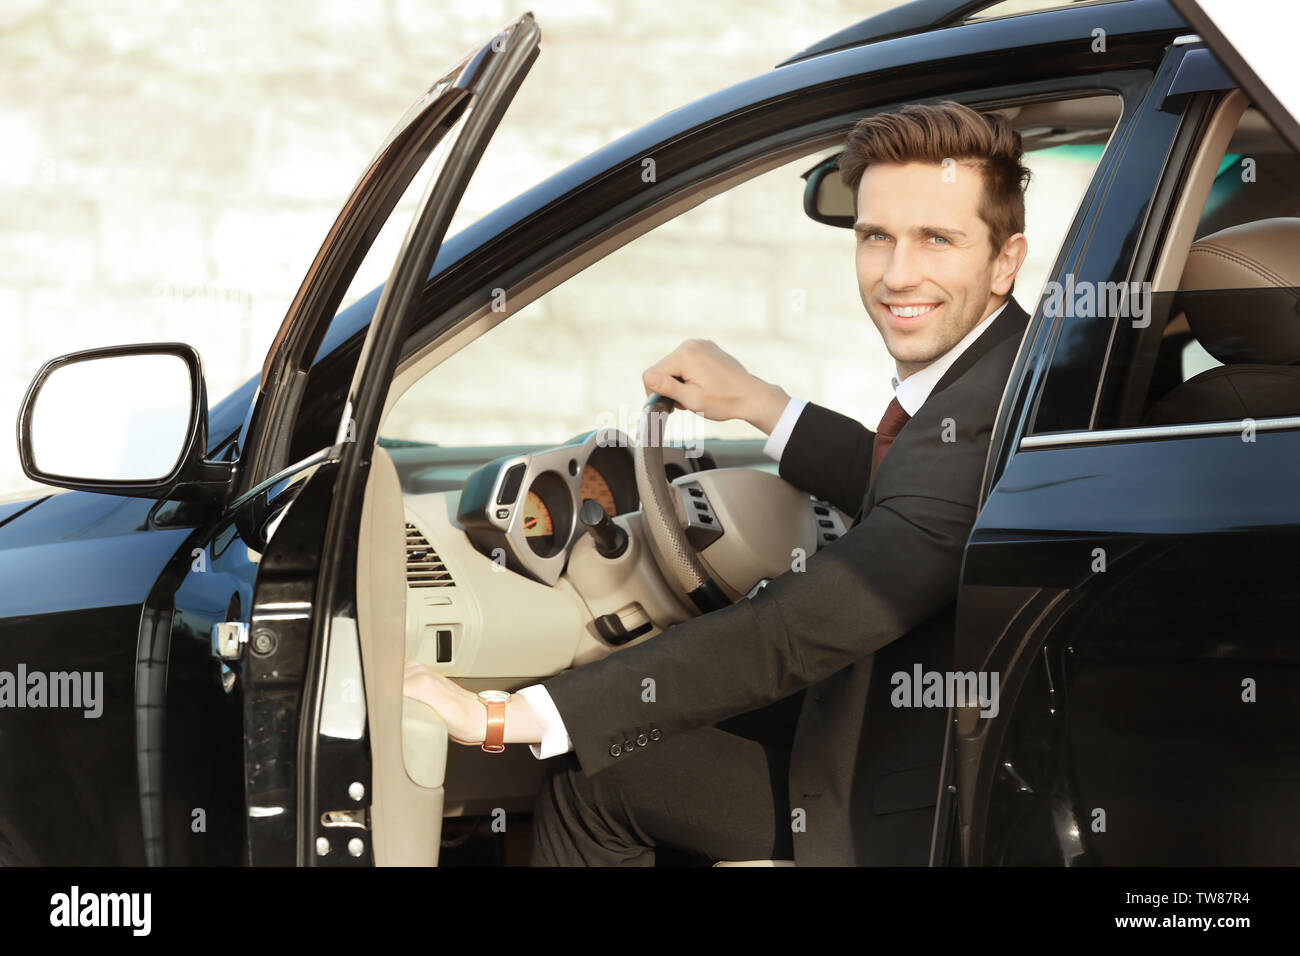 Man in formal wear getting out of car - Stock Image